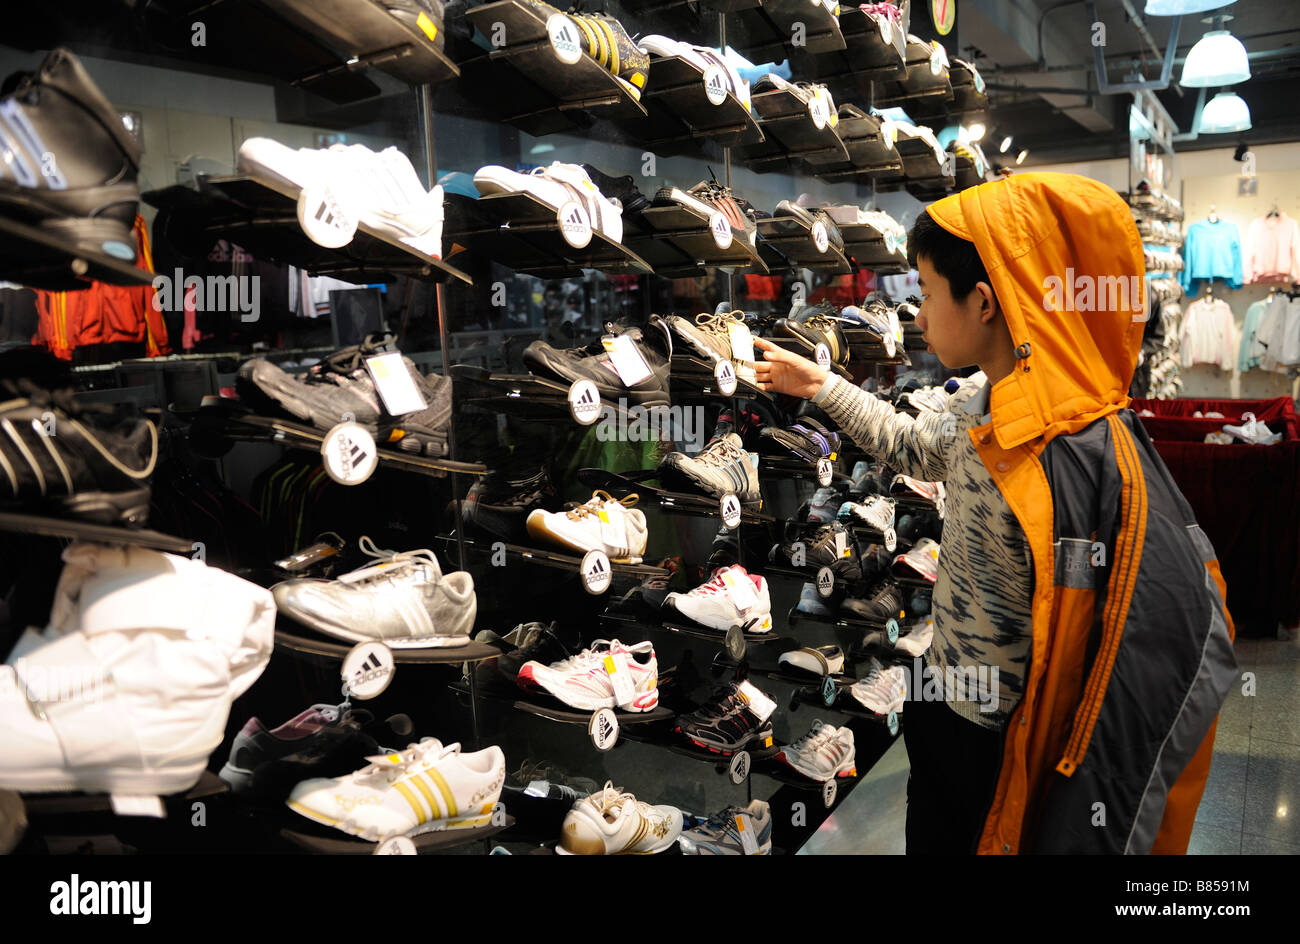 Adidas shoes are on sale in a store in Beijing China 11-Feb-2009 - Stock Image